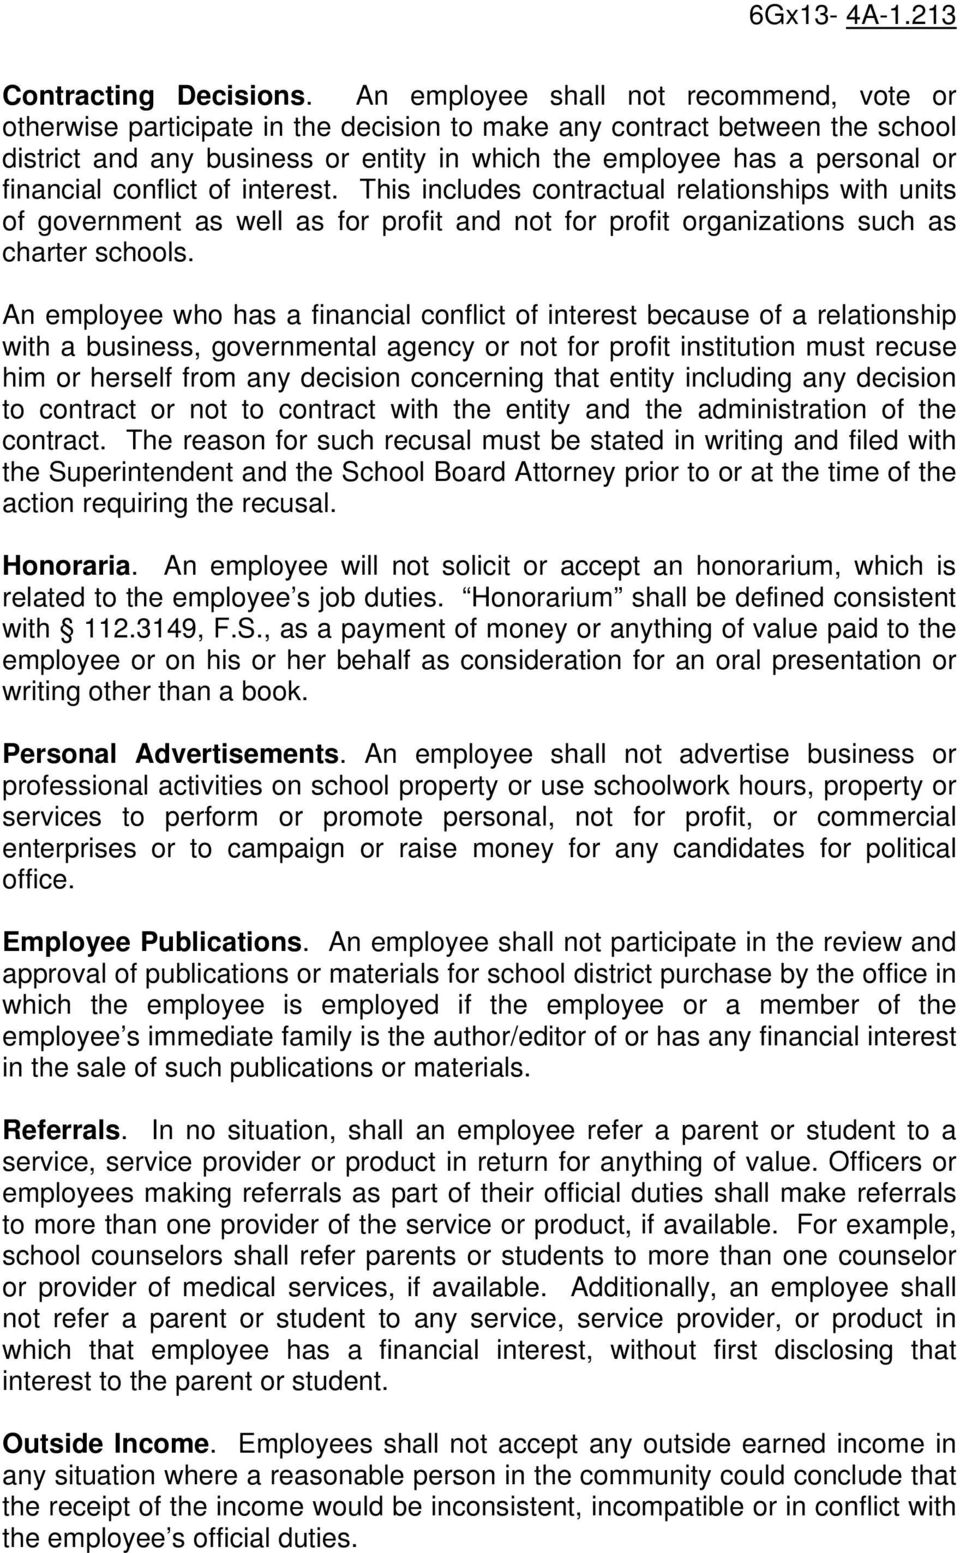 financial conflict of interest. This includes contractual relationships with units of government as well as for profit and not for profit organizations such as charter schools.